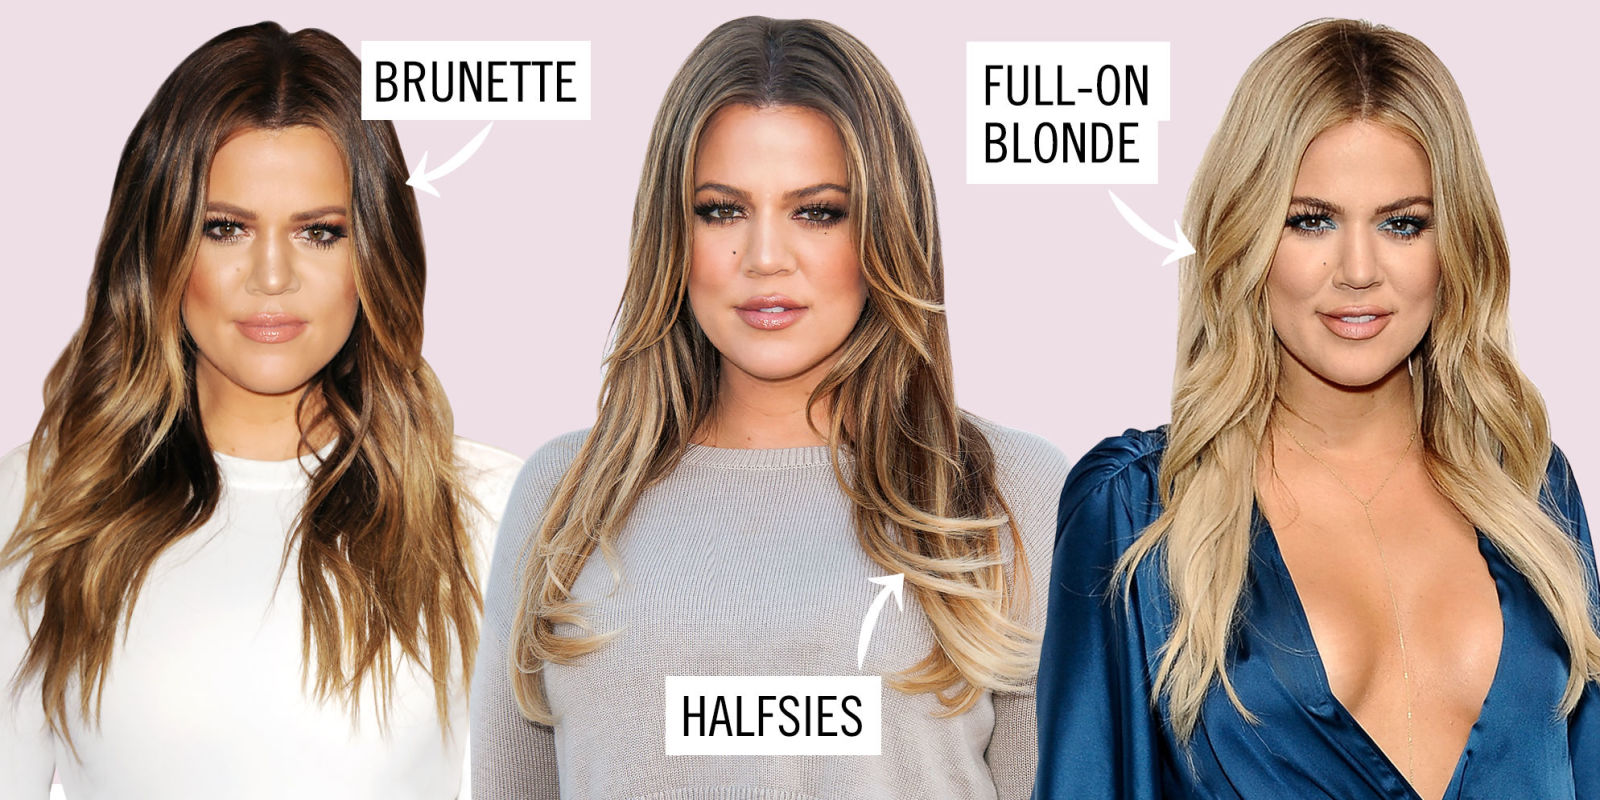 Pleasant Brunette Going Blonde Tips How To Go Blonde The Right Way Hairstyles For Men Maxibearus